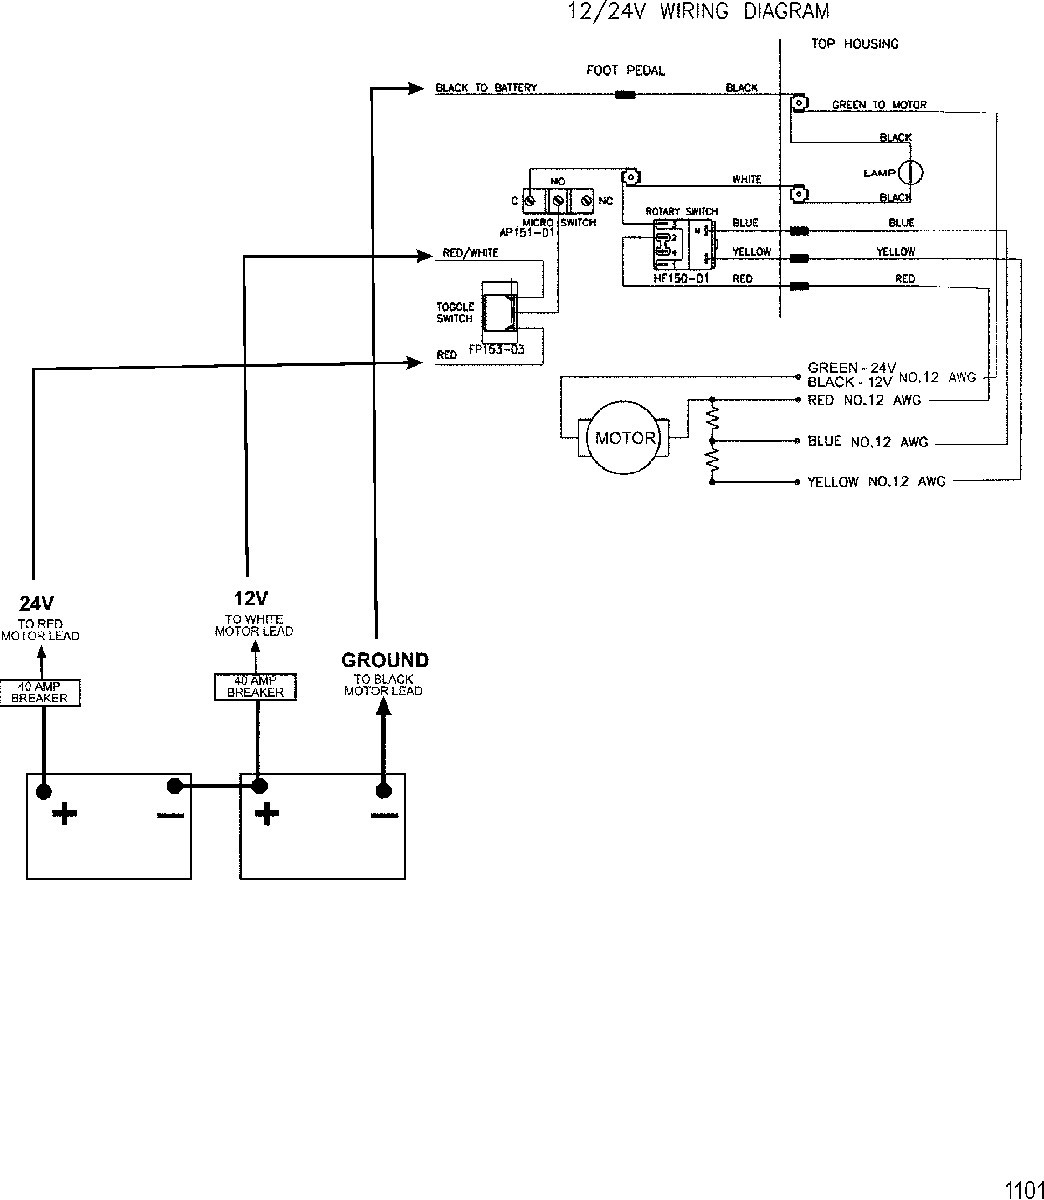 Motorguide Wiring Diagram | Wiring Diagram on